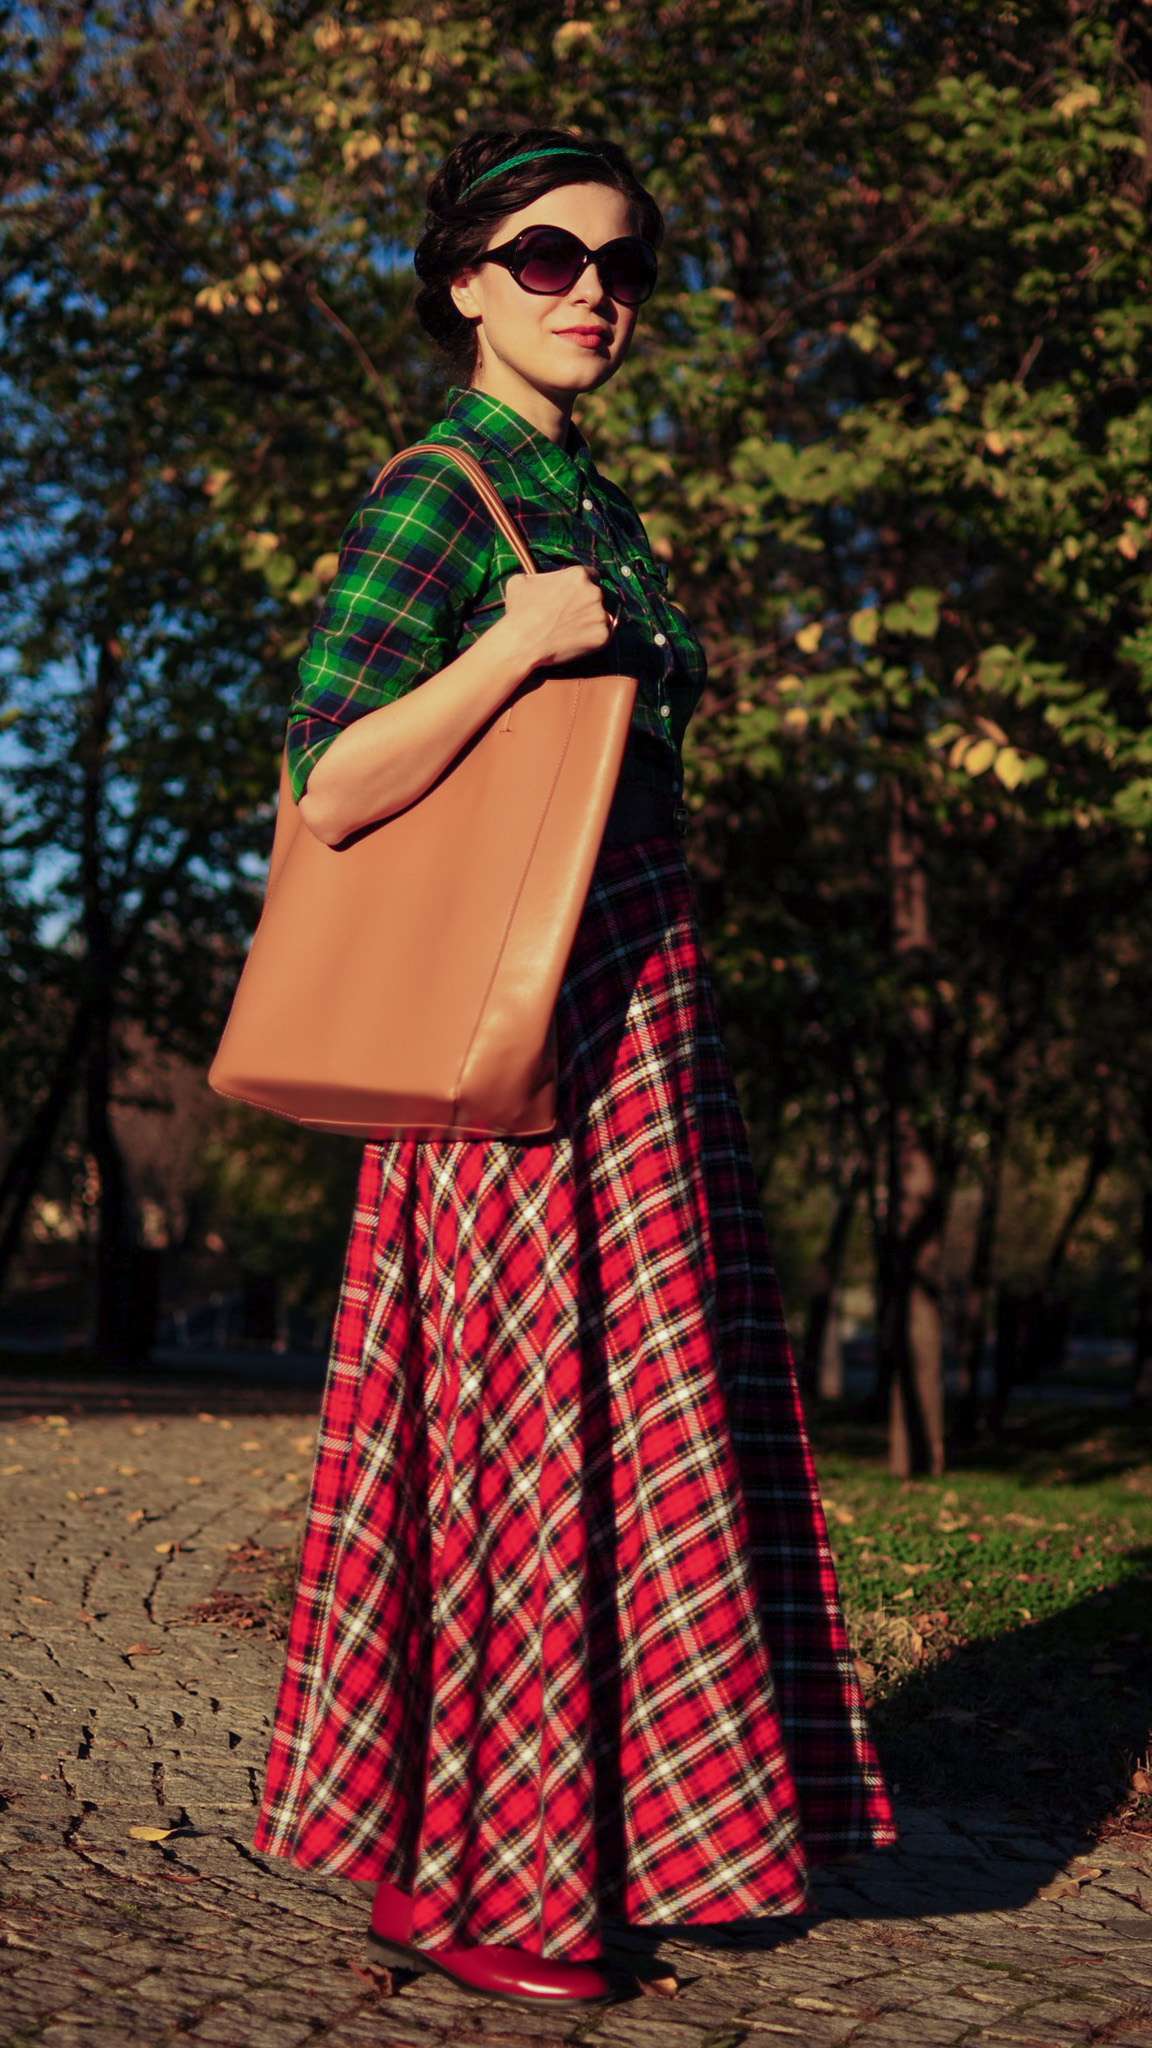 tartan maxi skirt tartan shirt green burgundy maxi bag autumn fall leaves scenery